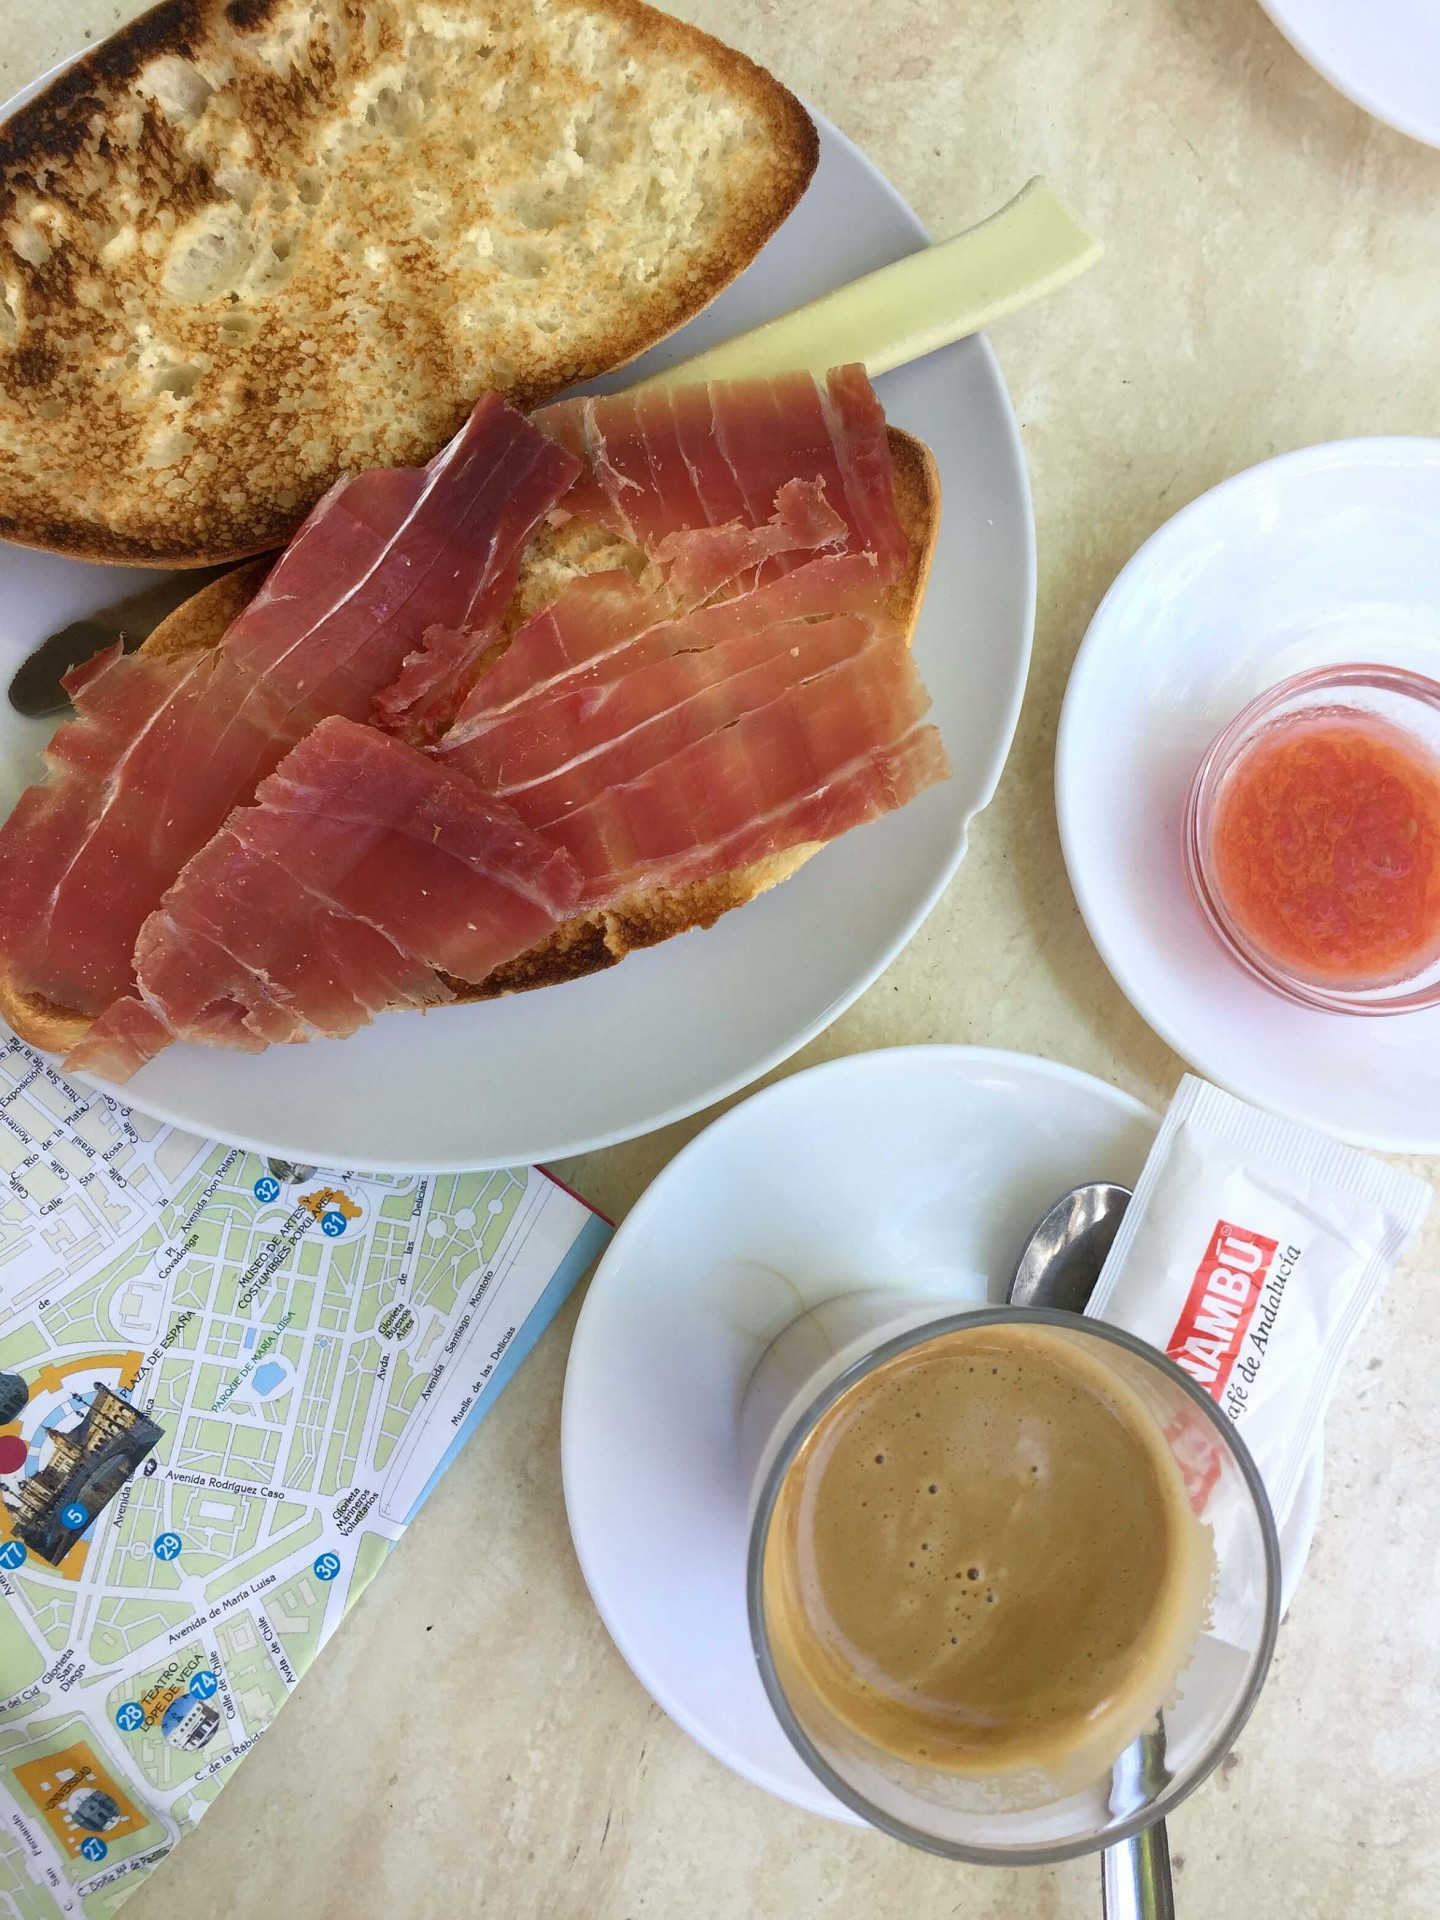 When you visit Seville in Spain, make sure you eat breakfast like a local! Pan con tomate with jamon is a must try. Find out other Top things to see and do in Seville.